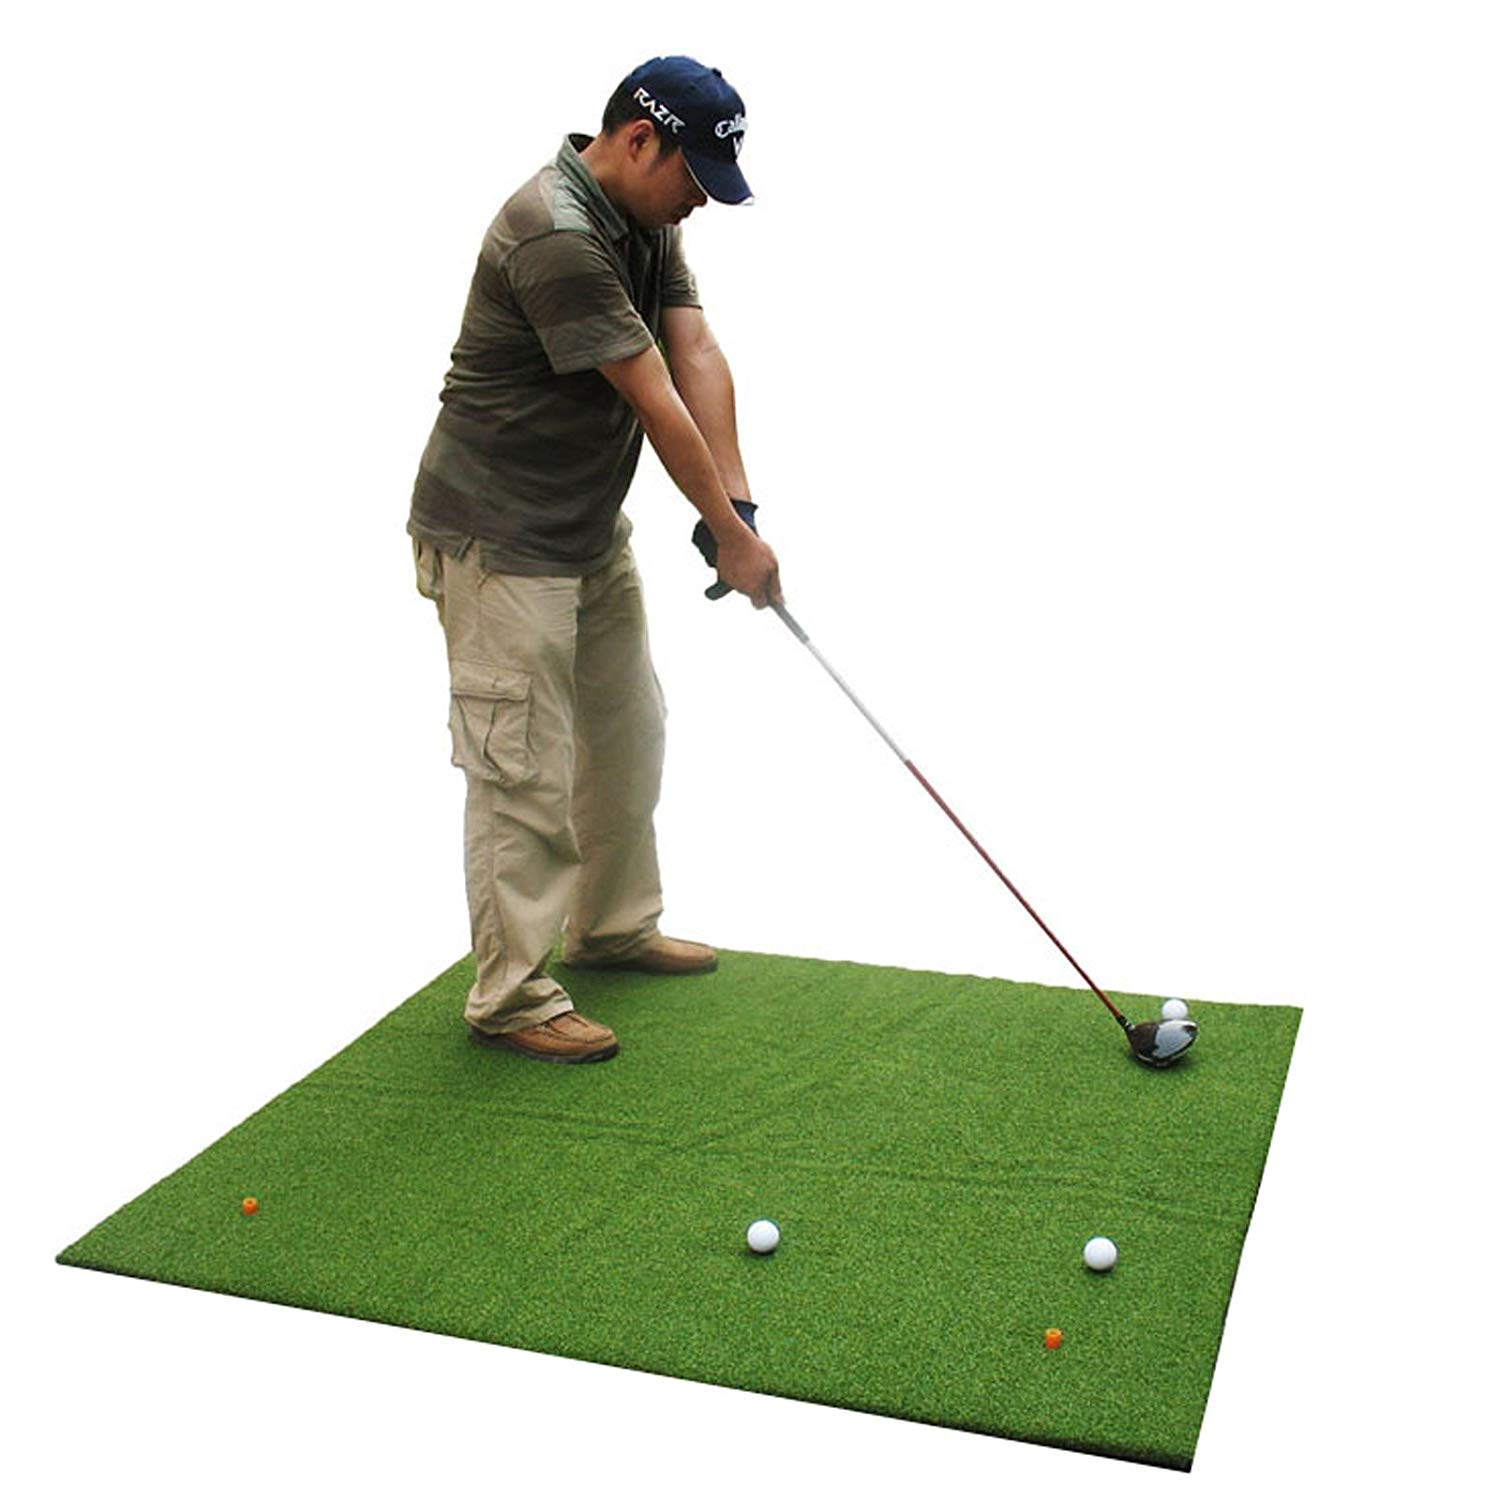 Popsport 3' x 4'/3' x 5'/4' x 4'/4' x 5'/5' x 5' Golf Mats Practice Golf Hitting Mat Portable Outdoor Sports Golf Training Turf Mat for Indoor Backyard or Outdoor Practice (4' x 5') by Popsport